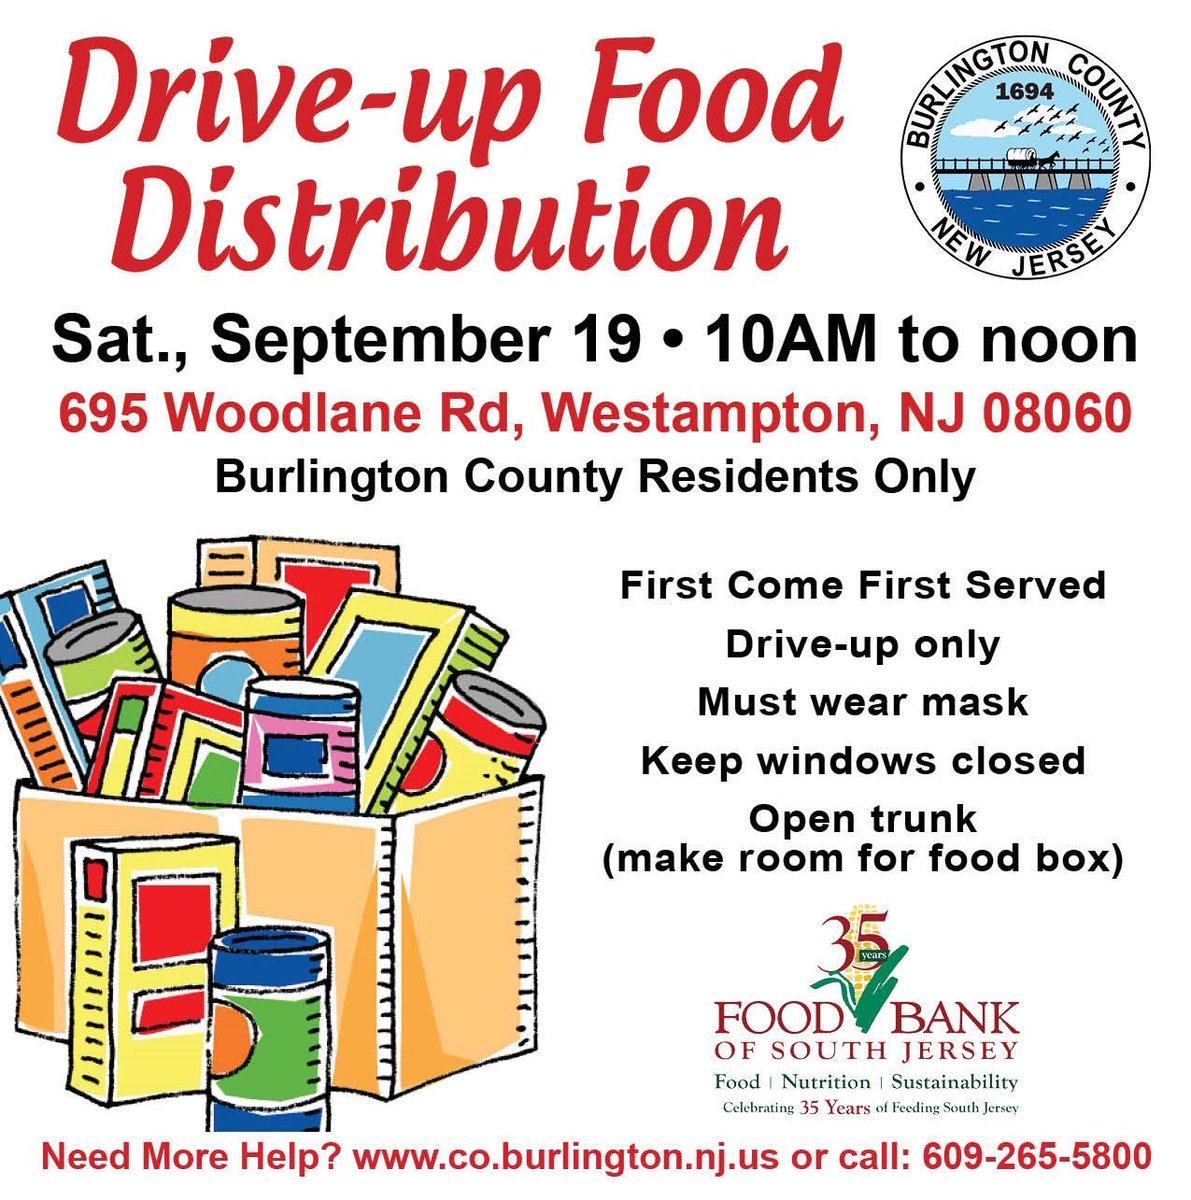 The County is hosting its 11th food distribution event this Sat., Sept. 19, from 10AM-noon, in the parking lot of the Emergency Services Training Center in Westampton. Residents in need of the assistance are eligible for free boxes of food & produce. Please spread the word!